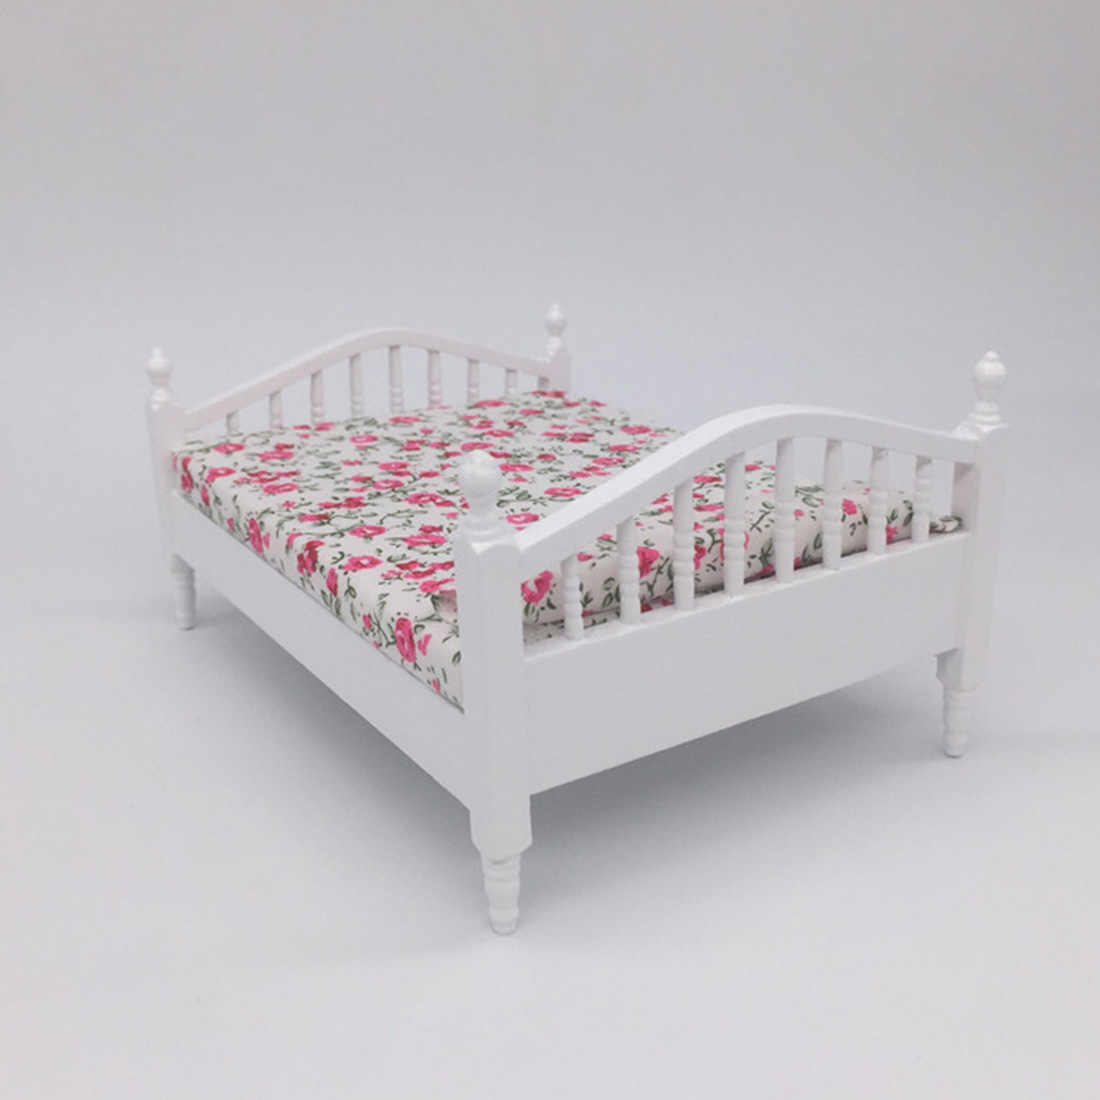 1/12 Scale Miniature Dollhouse Pocket Double Bed Model Diy Assembly Dolls Houses Accessories  - Dark Color Floral Pattern